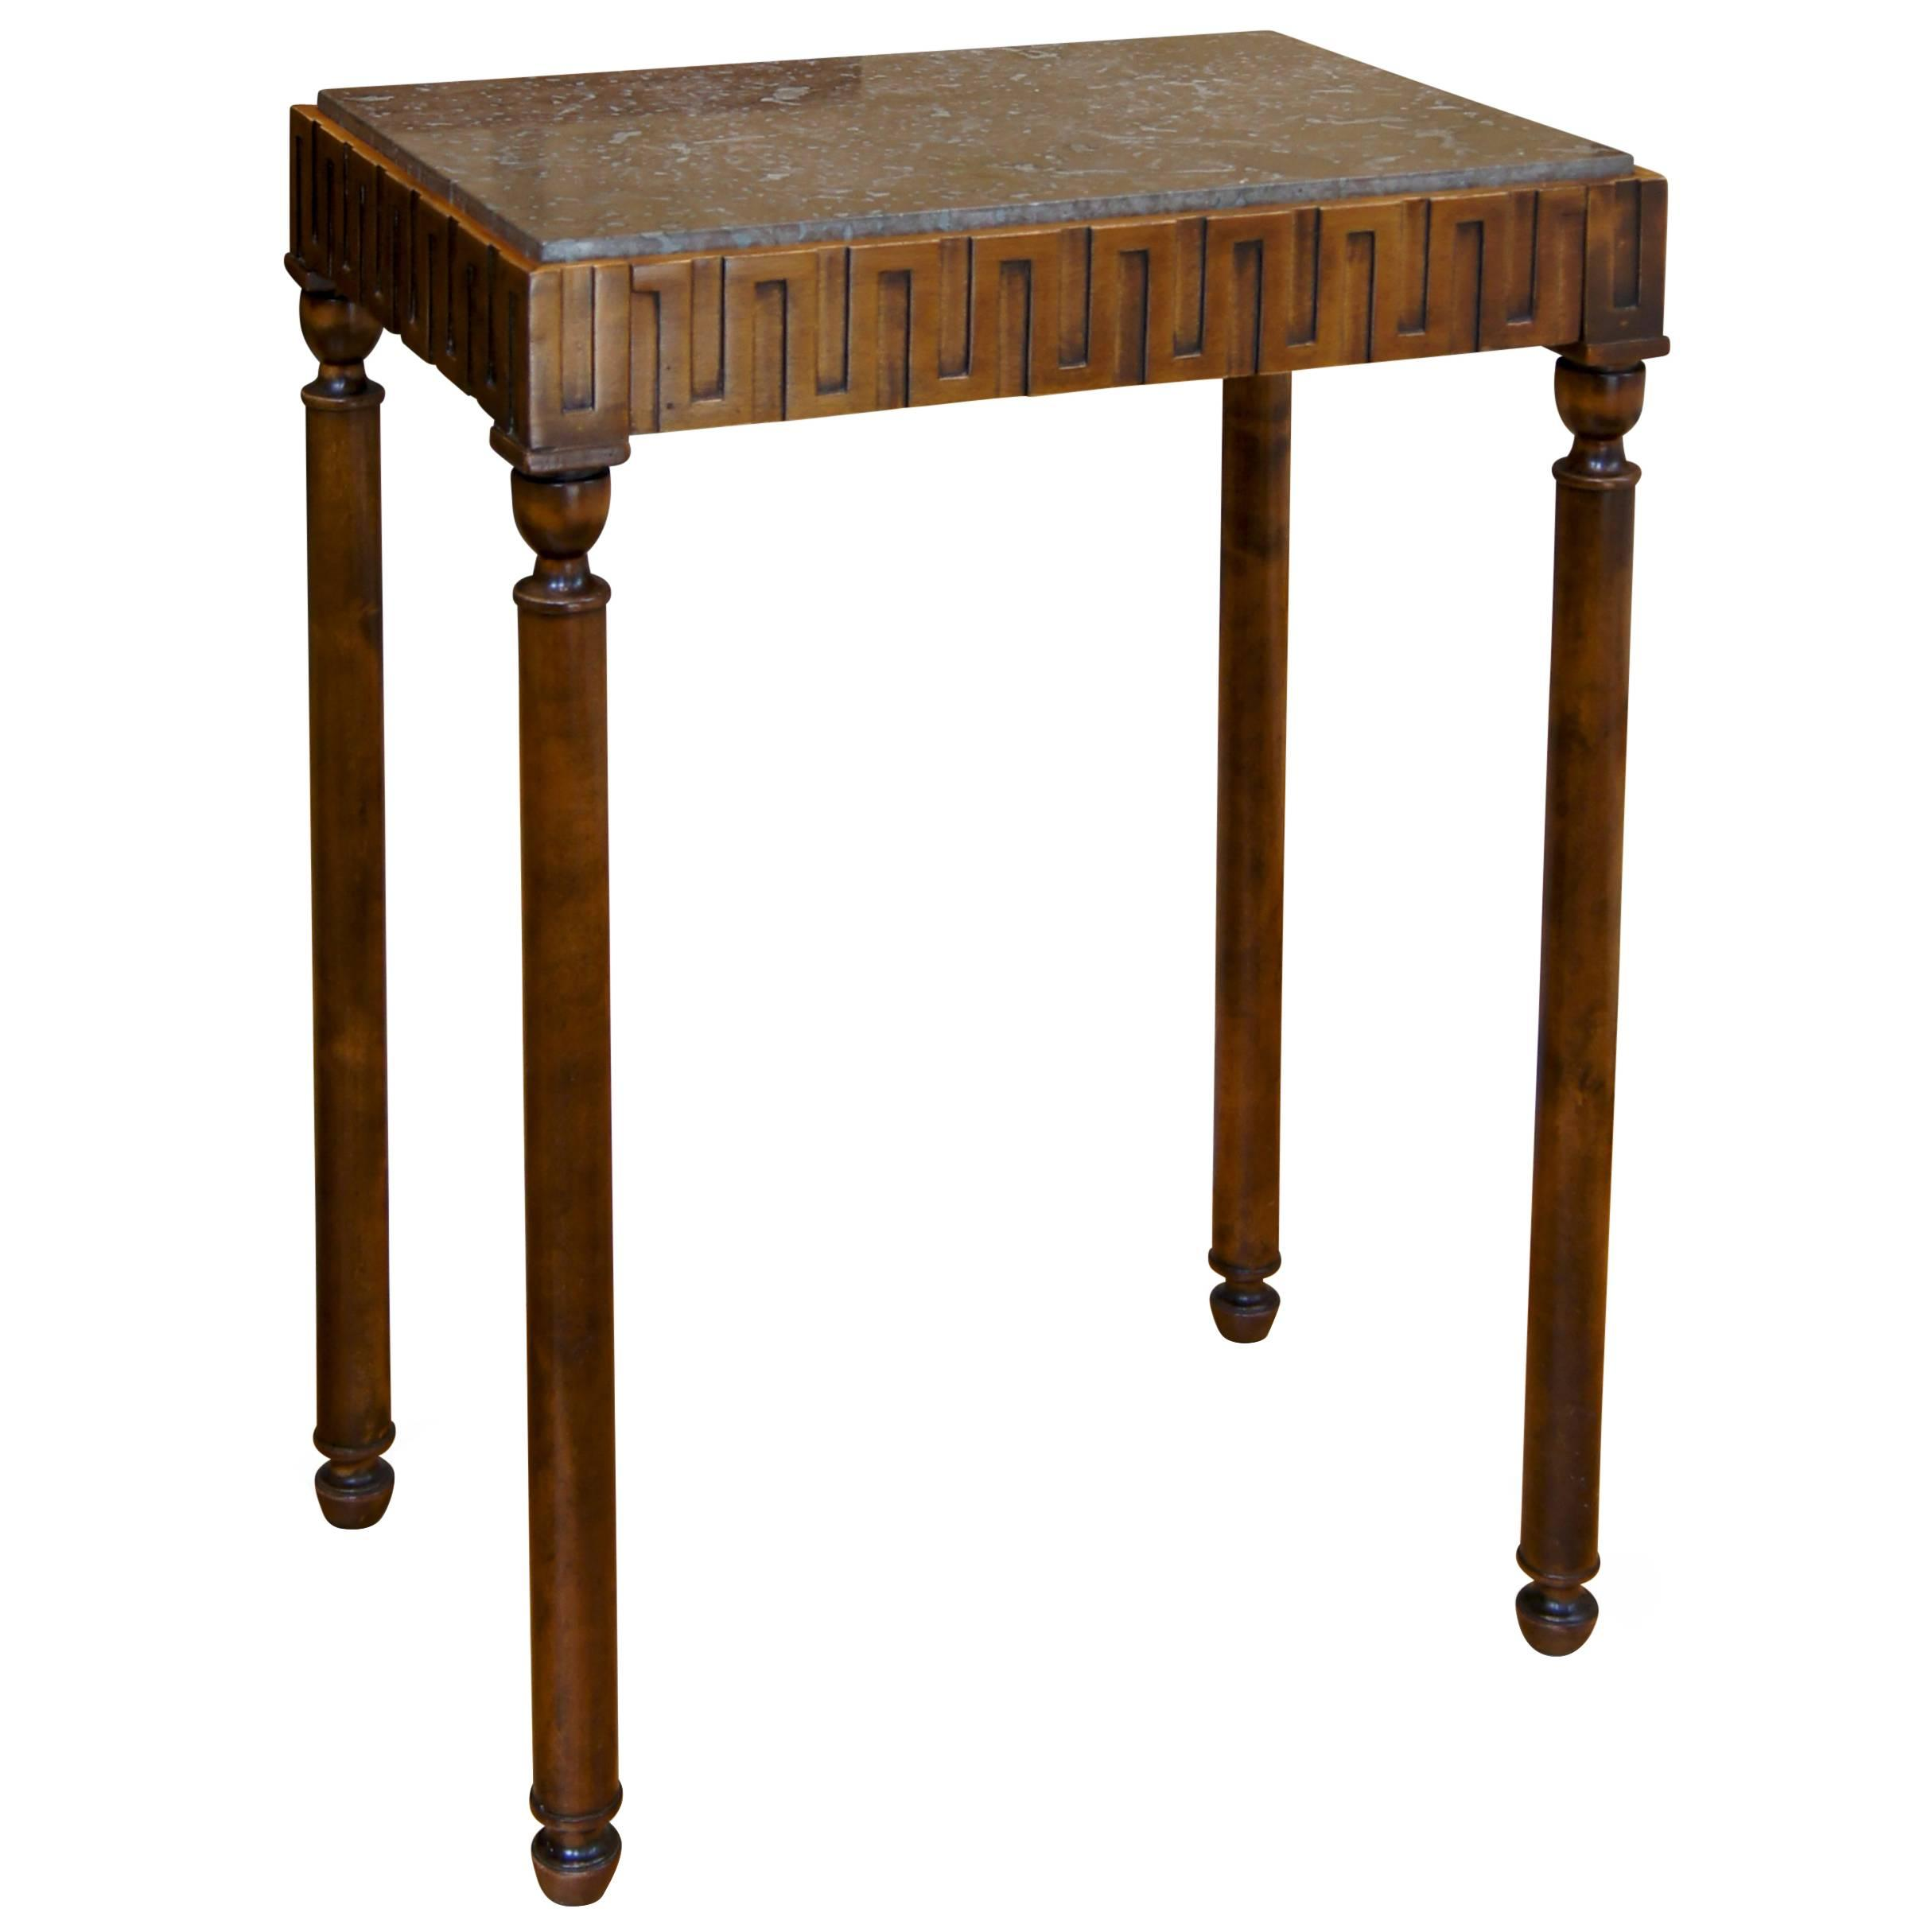 art deco side tables for hjorth table petite greek meander master eugene accent walnut rugs small antique and chairs living room center decor drum stool height round industrial